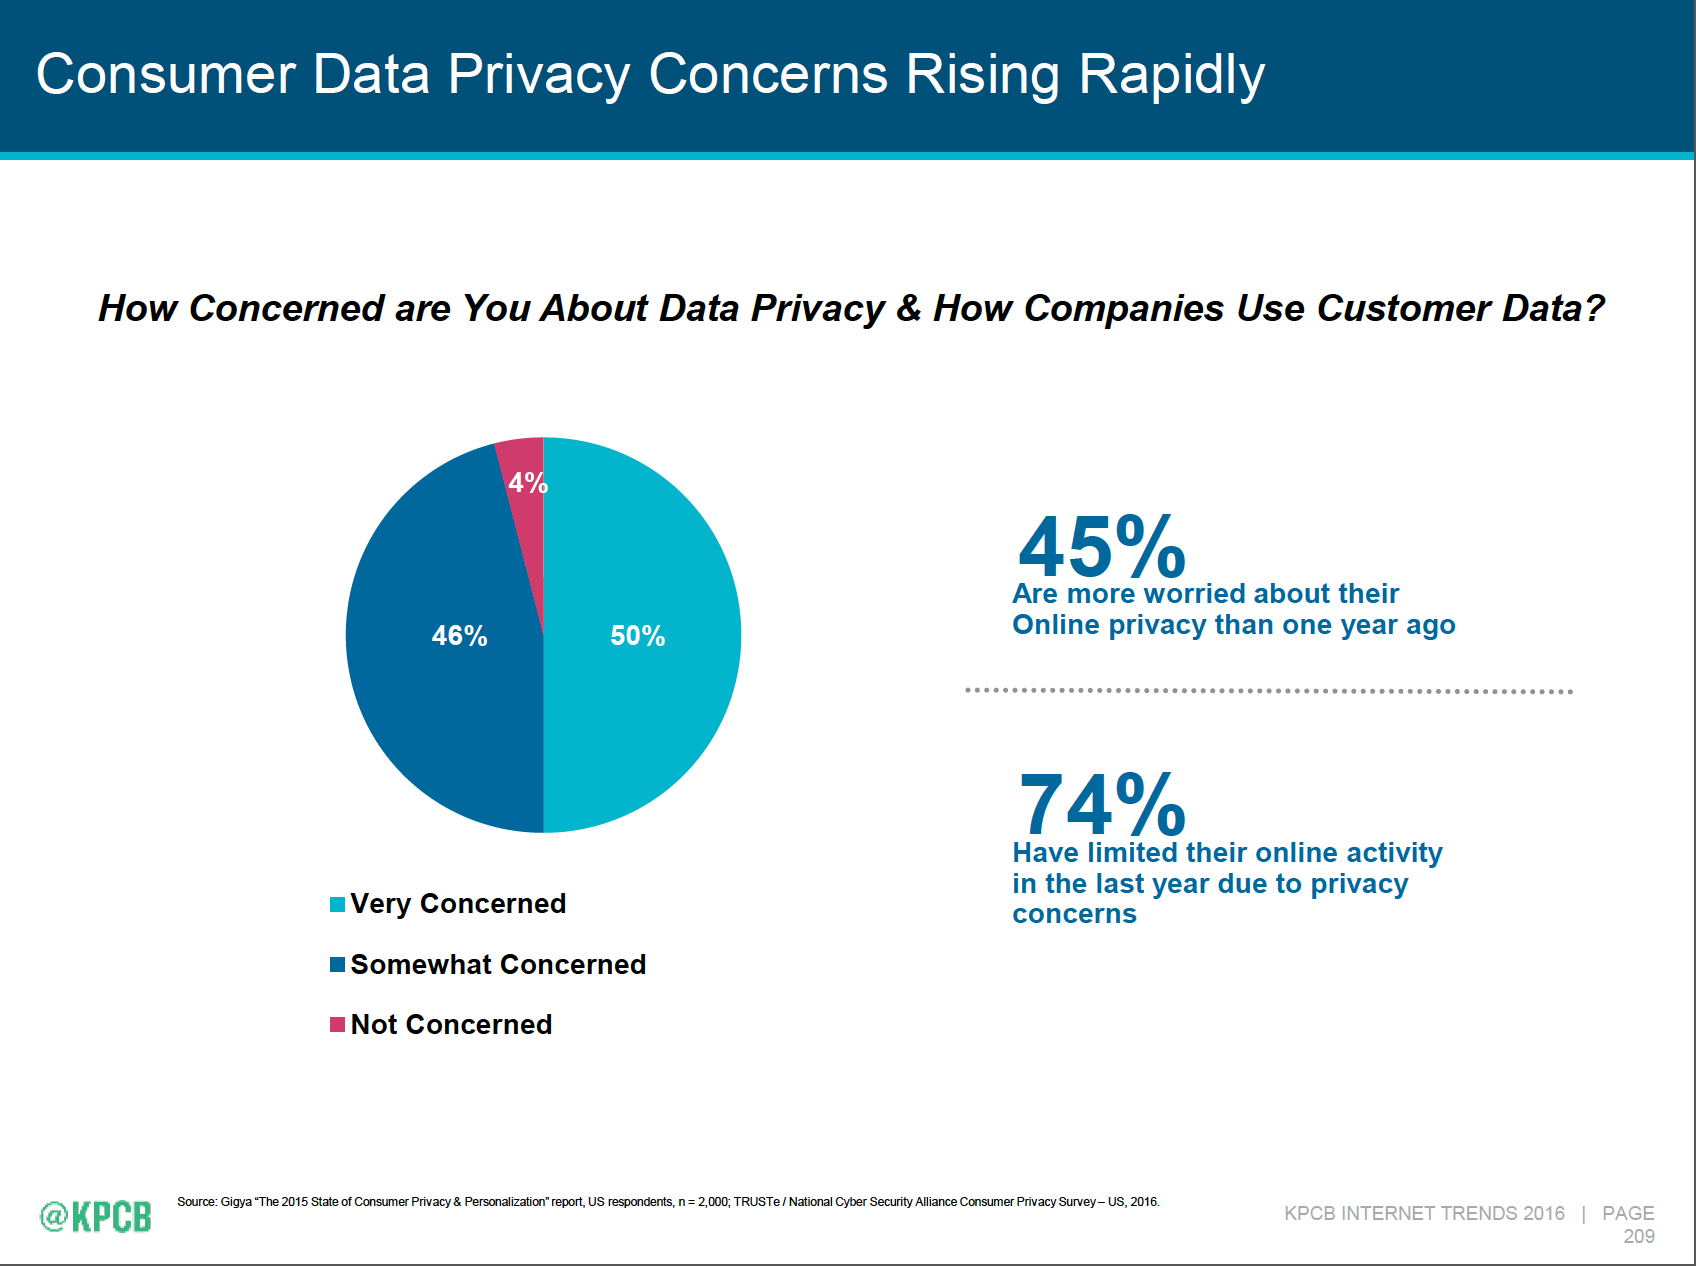 Consumer privacy concerns - Mary Meeker's 2016 Internet Trends Report